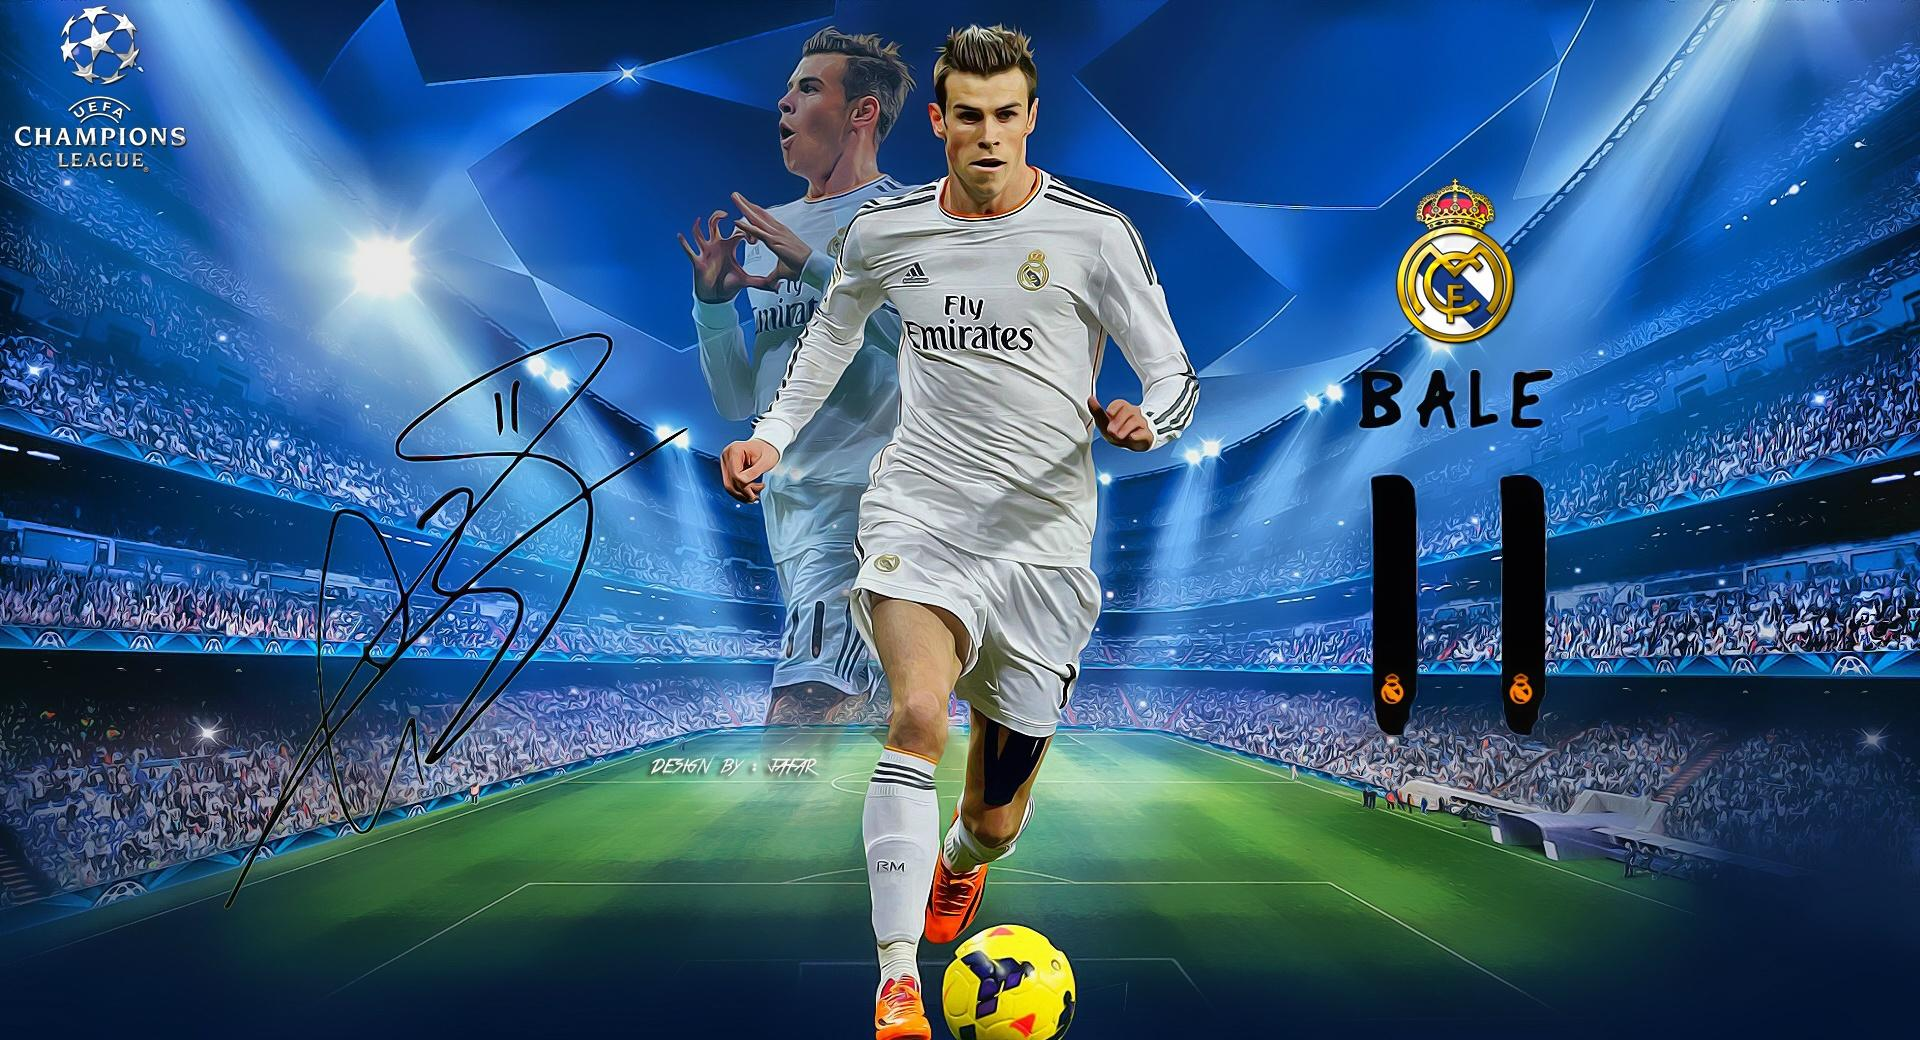 Gareth Bale Champions League wallpapers HD quality